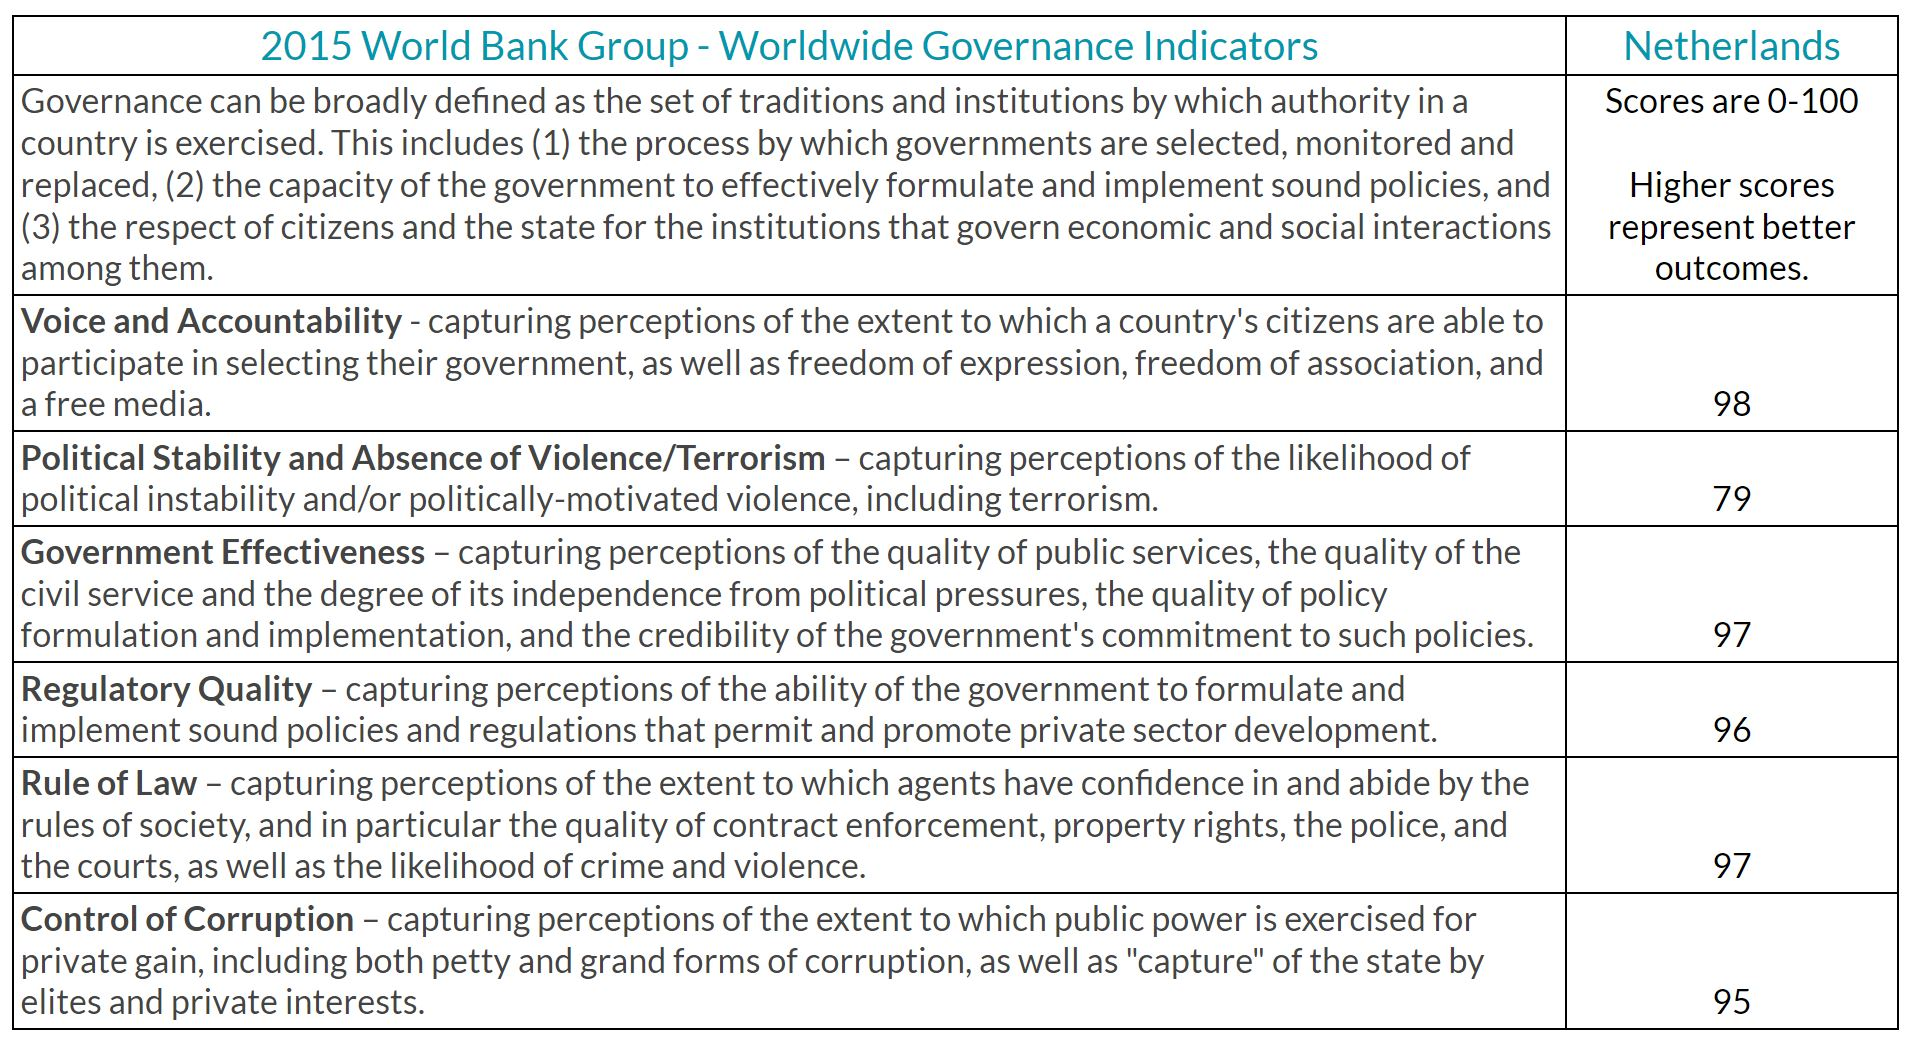 World Bank Group - Worldwide Governance Indicators - Netherlands